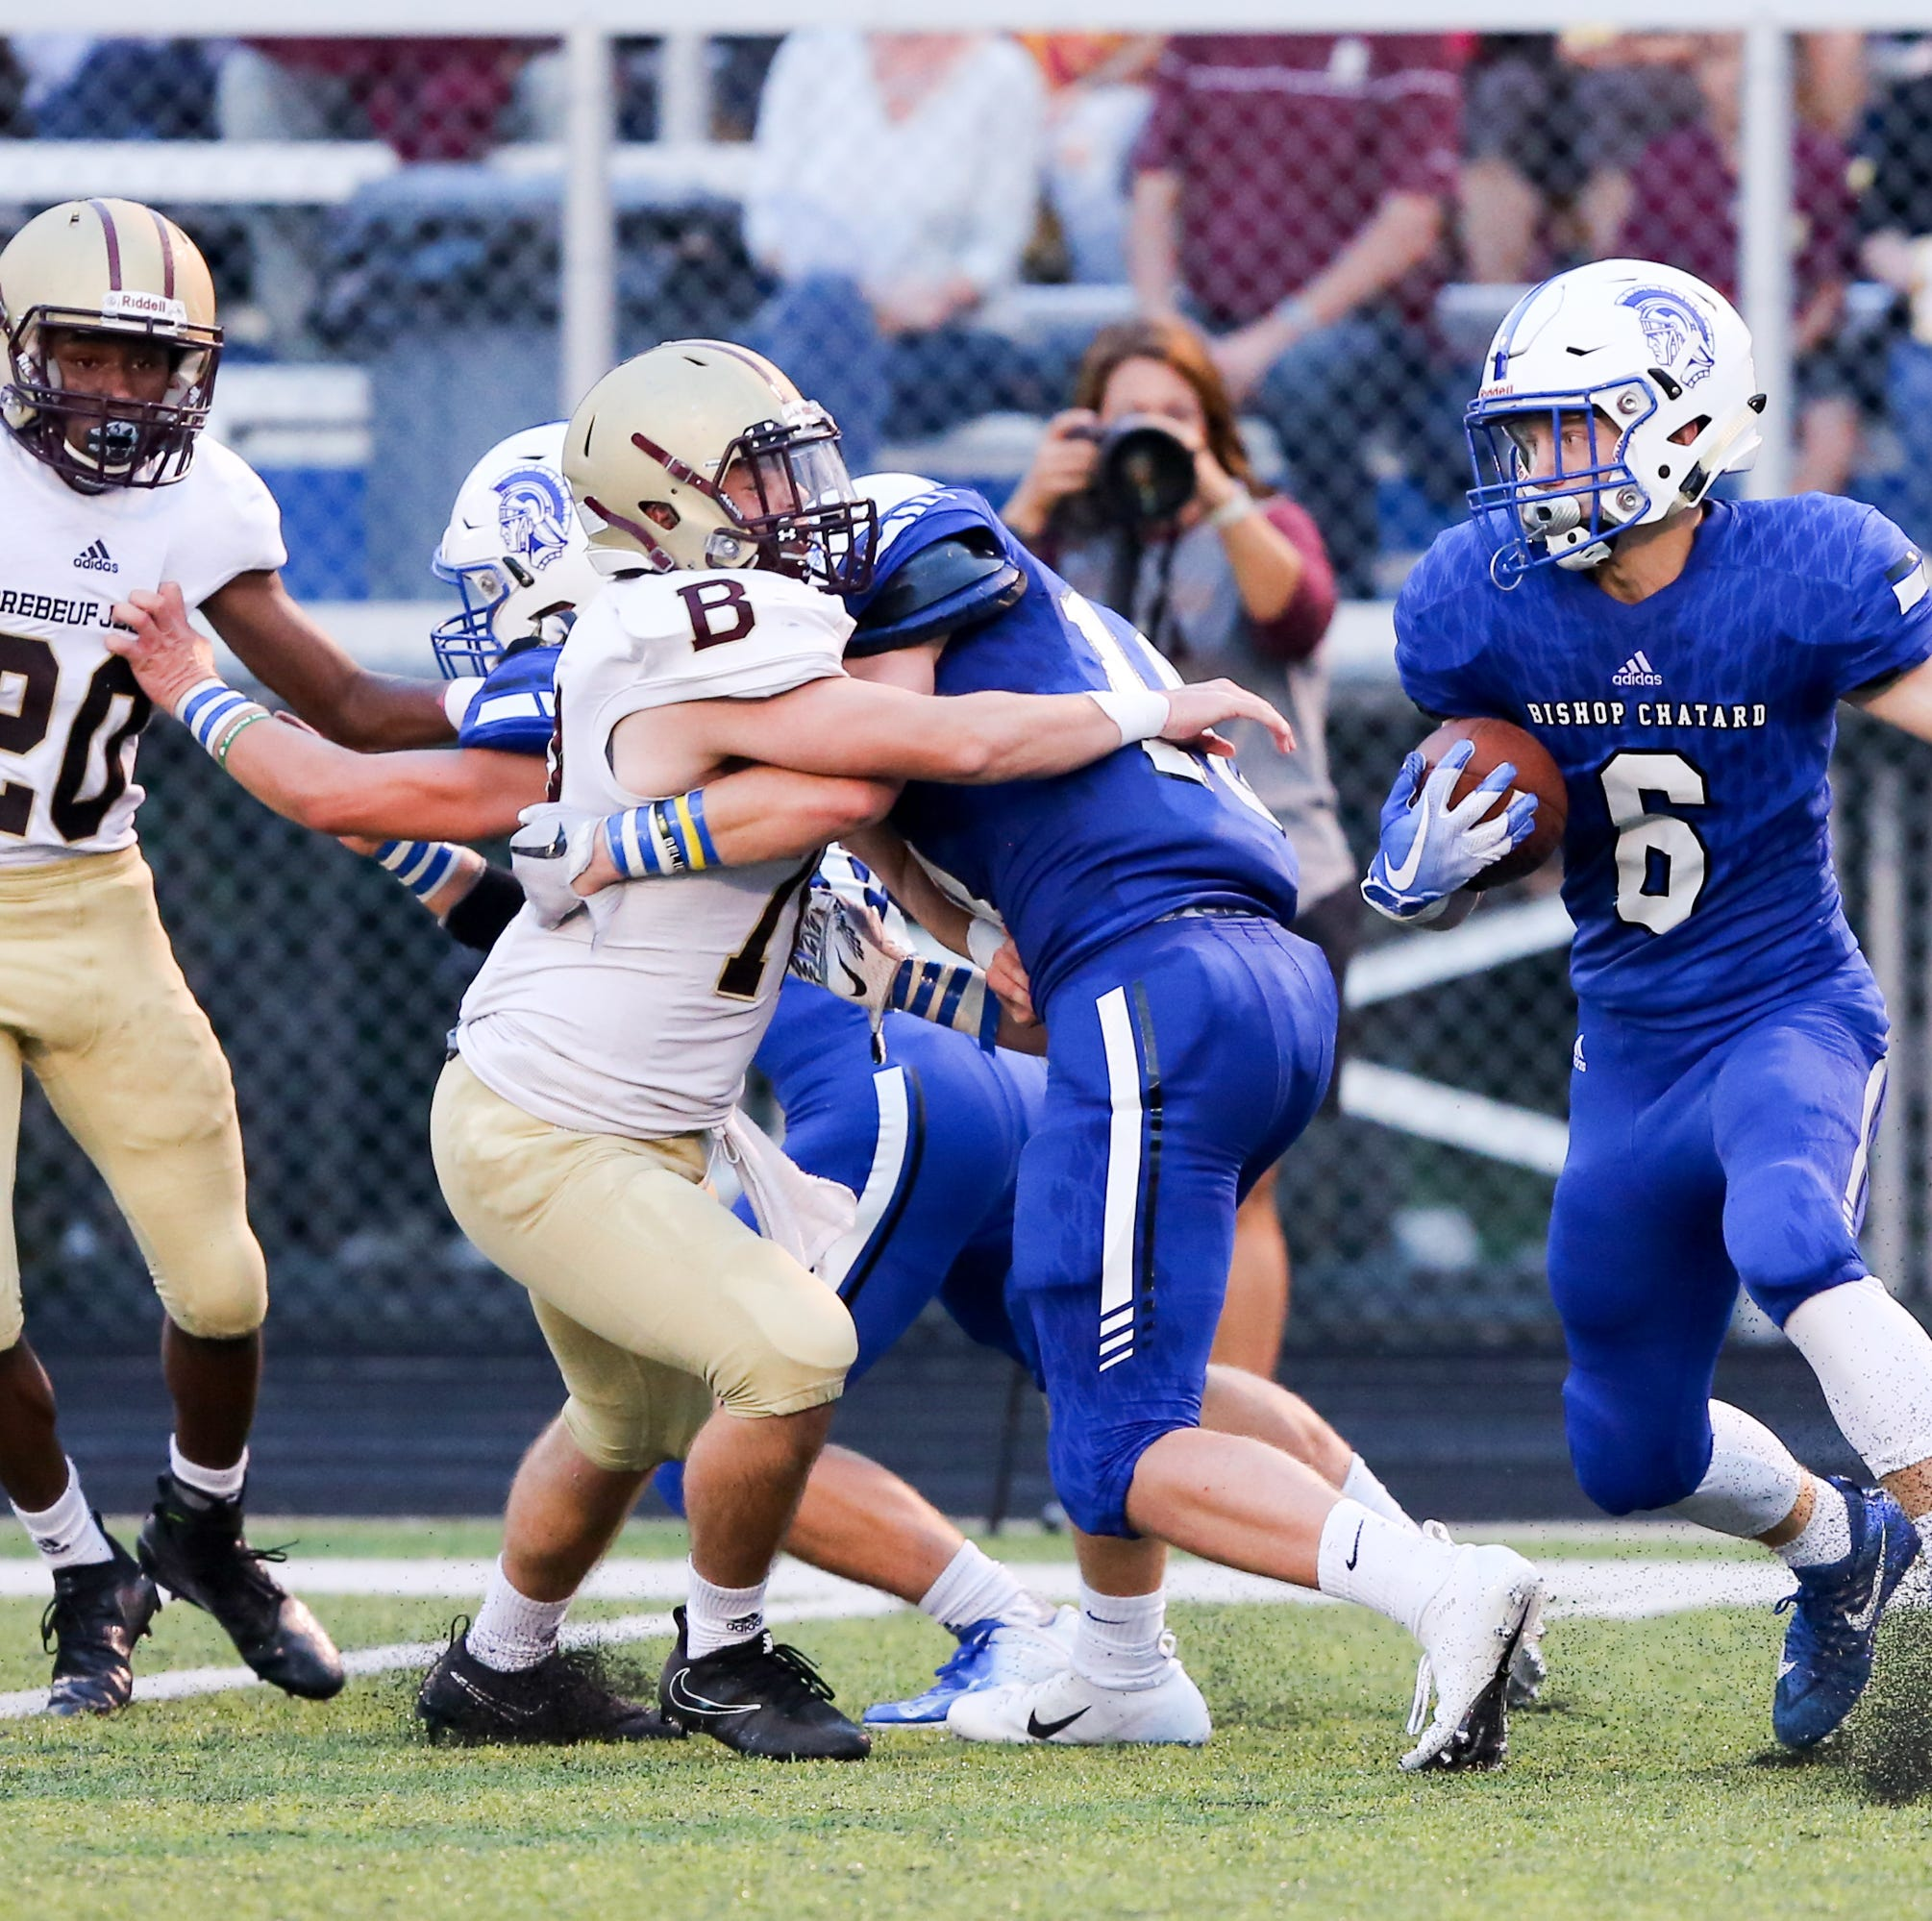 Bishop Chatard football gets first 'home' win in school's 57-year history